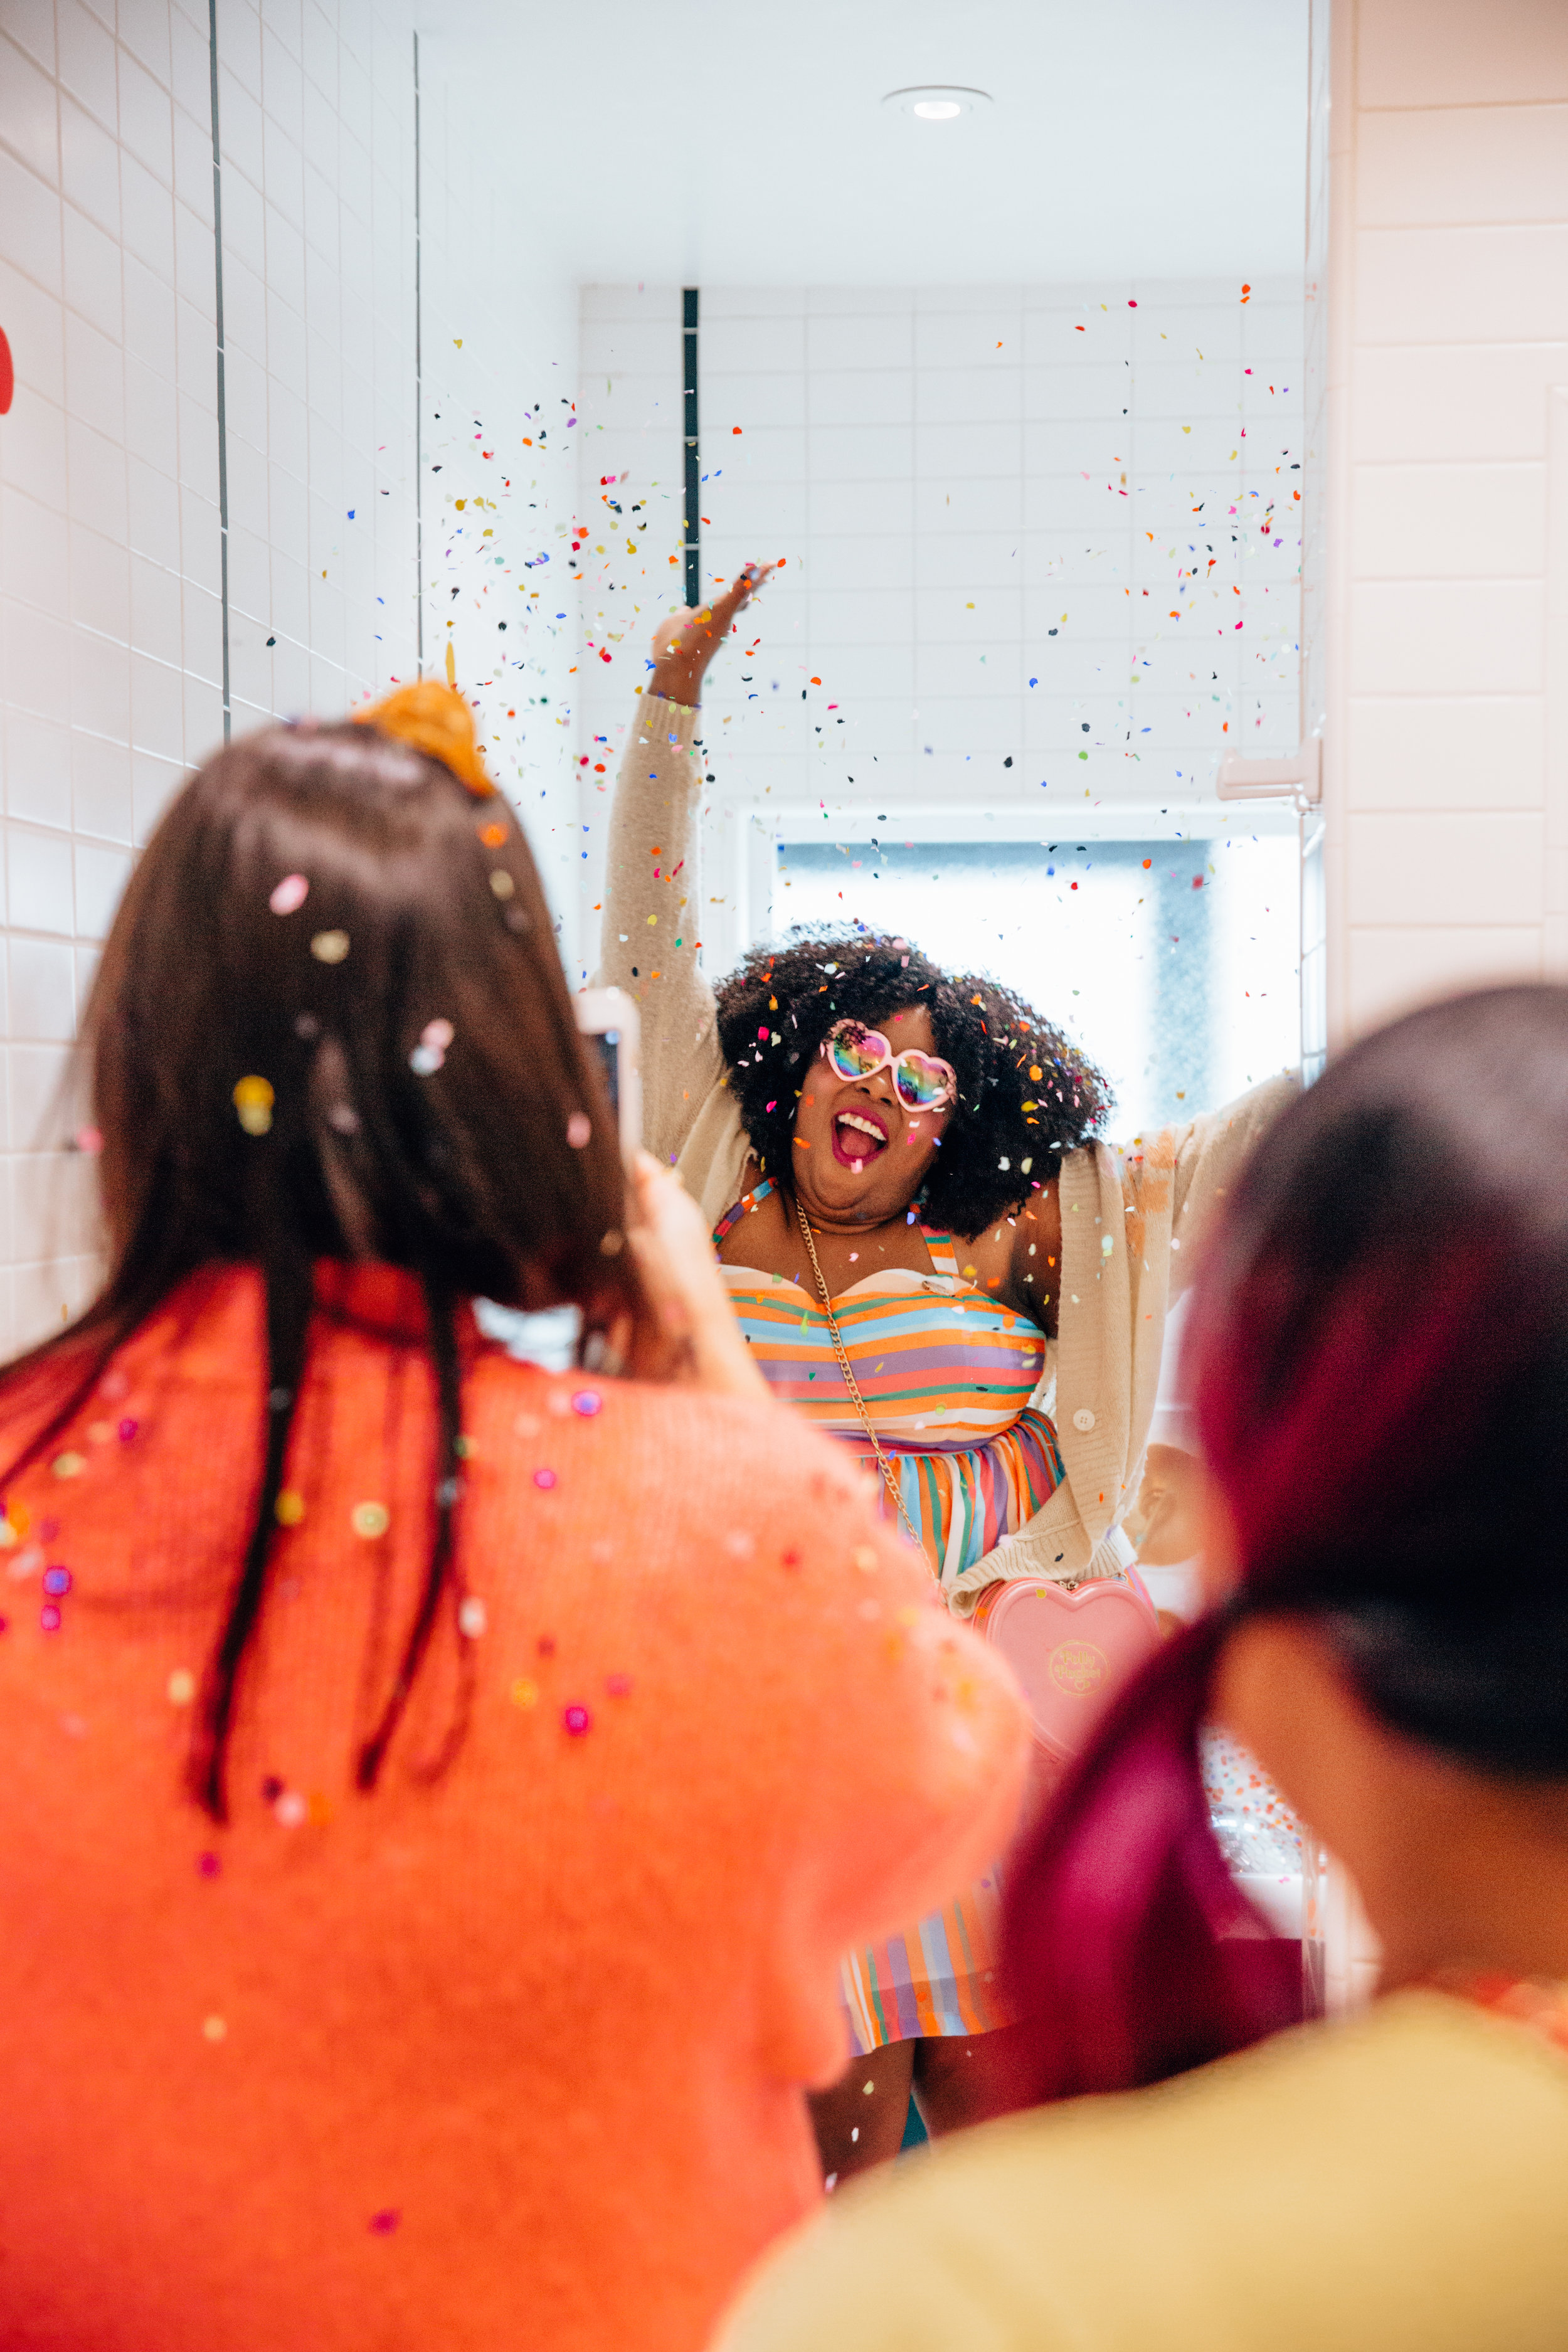 Throw your hands up in the air! We're living our best party life with Amina from  @studiomucci !